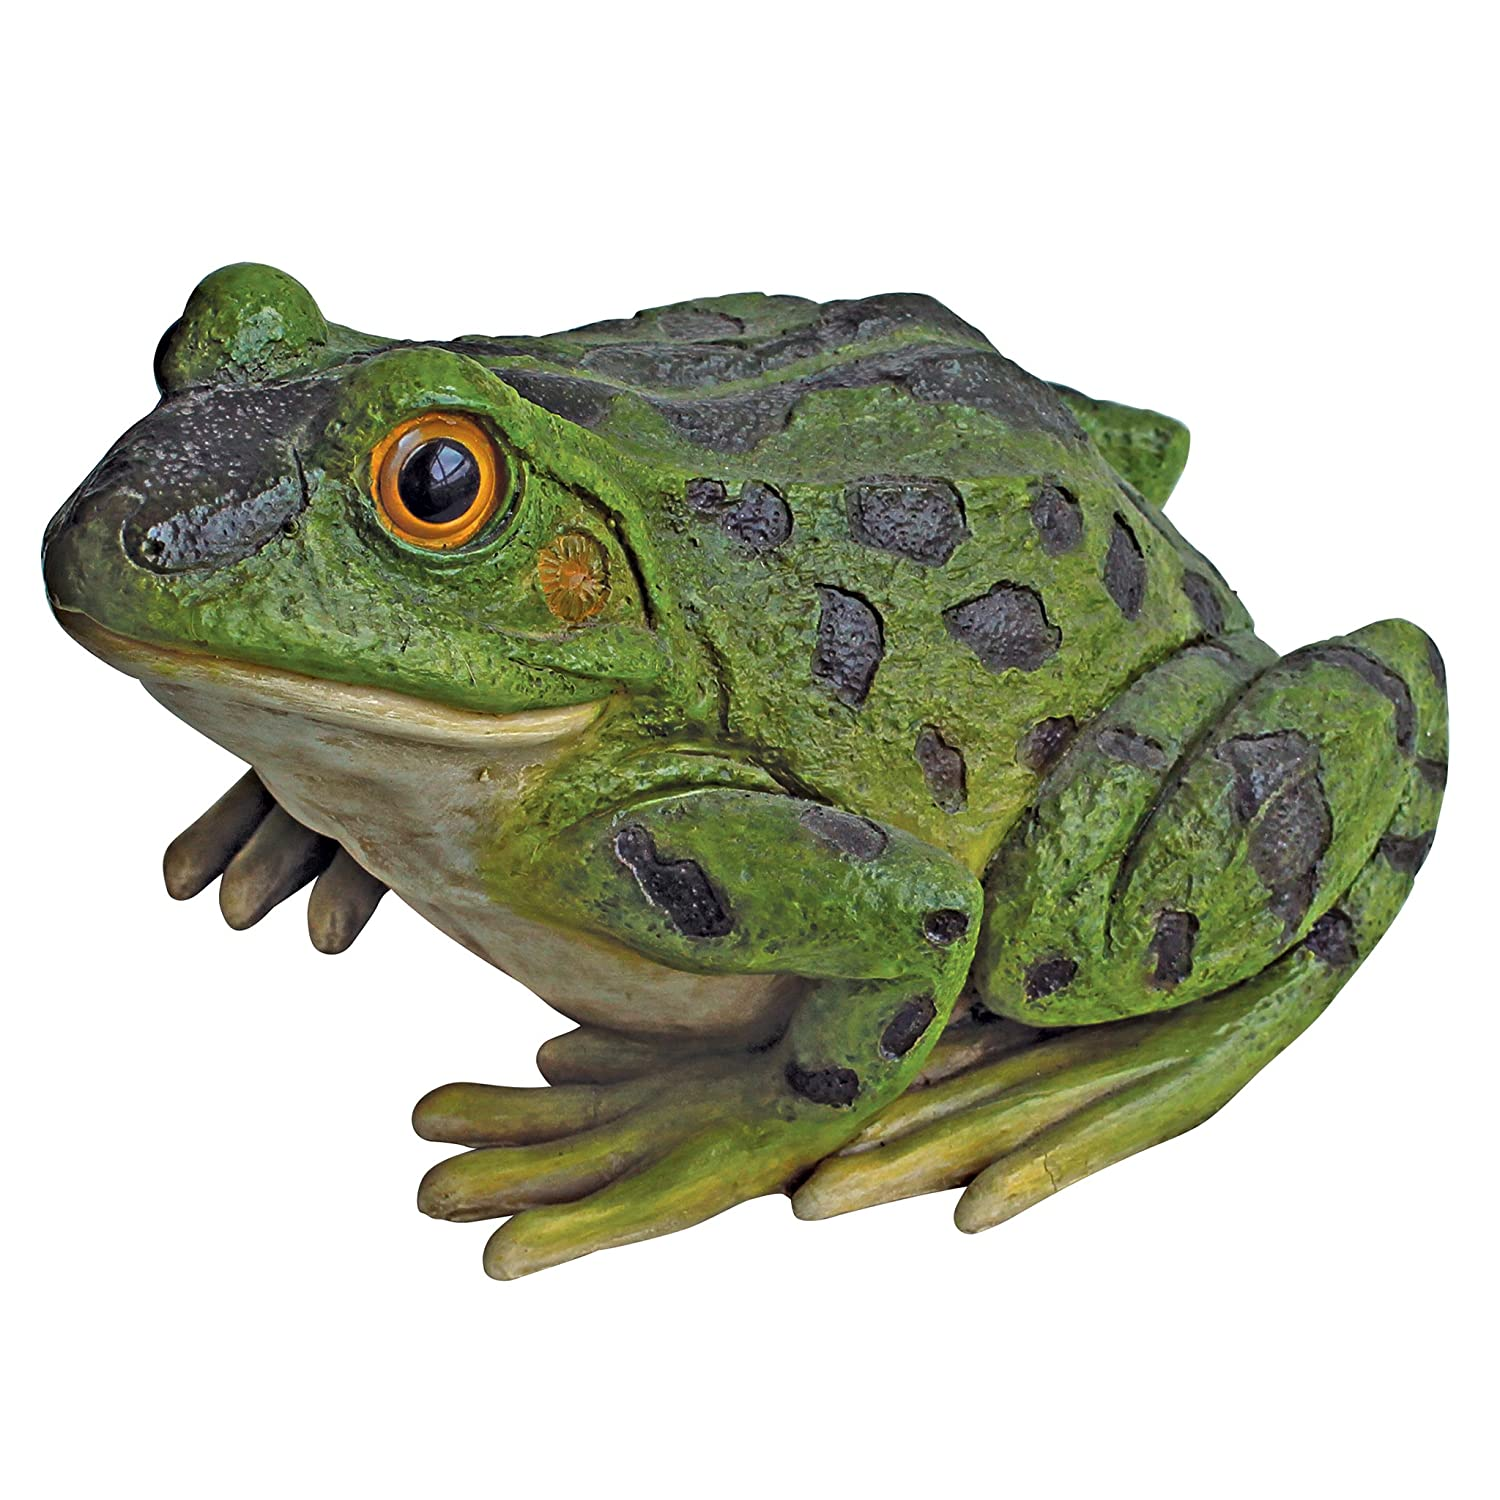 Design Toscano Ribbit The Frog Garden Toad Statue, 9 Inch, Polyresin, Full Color